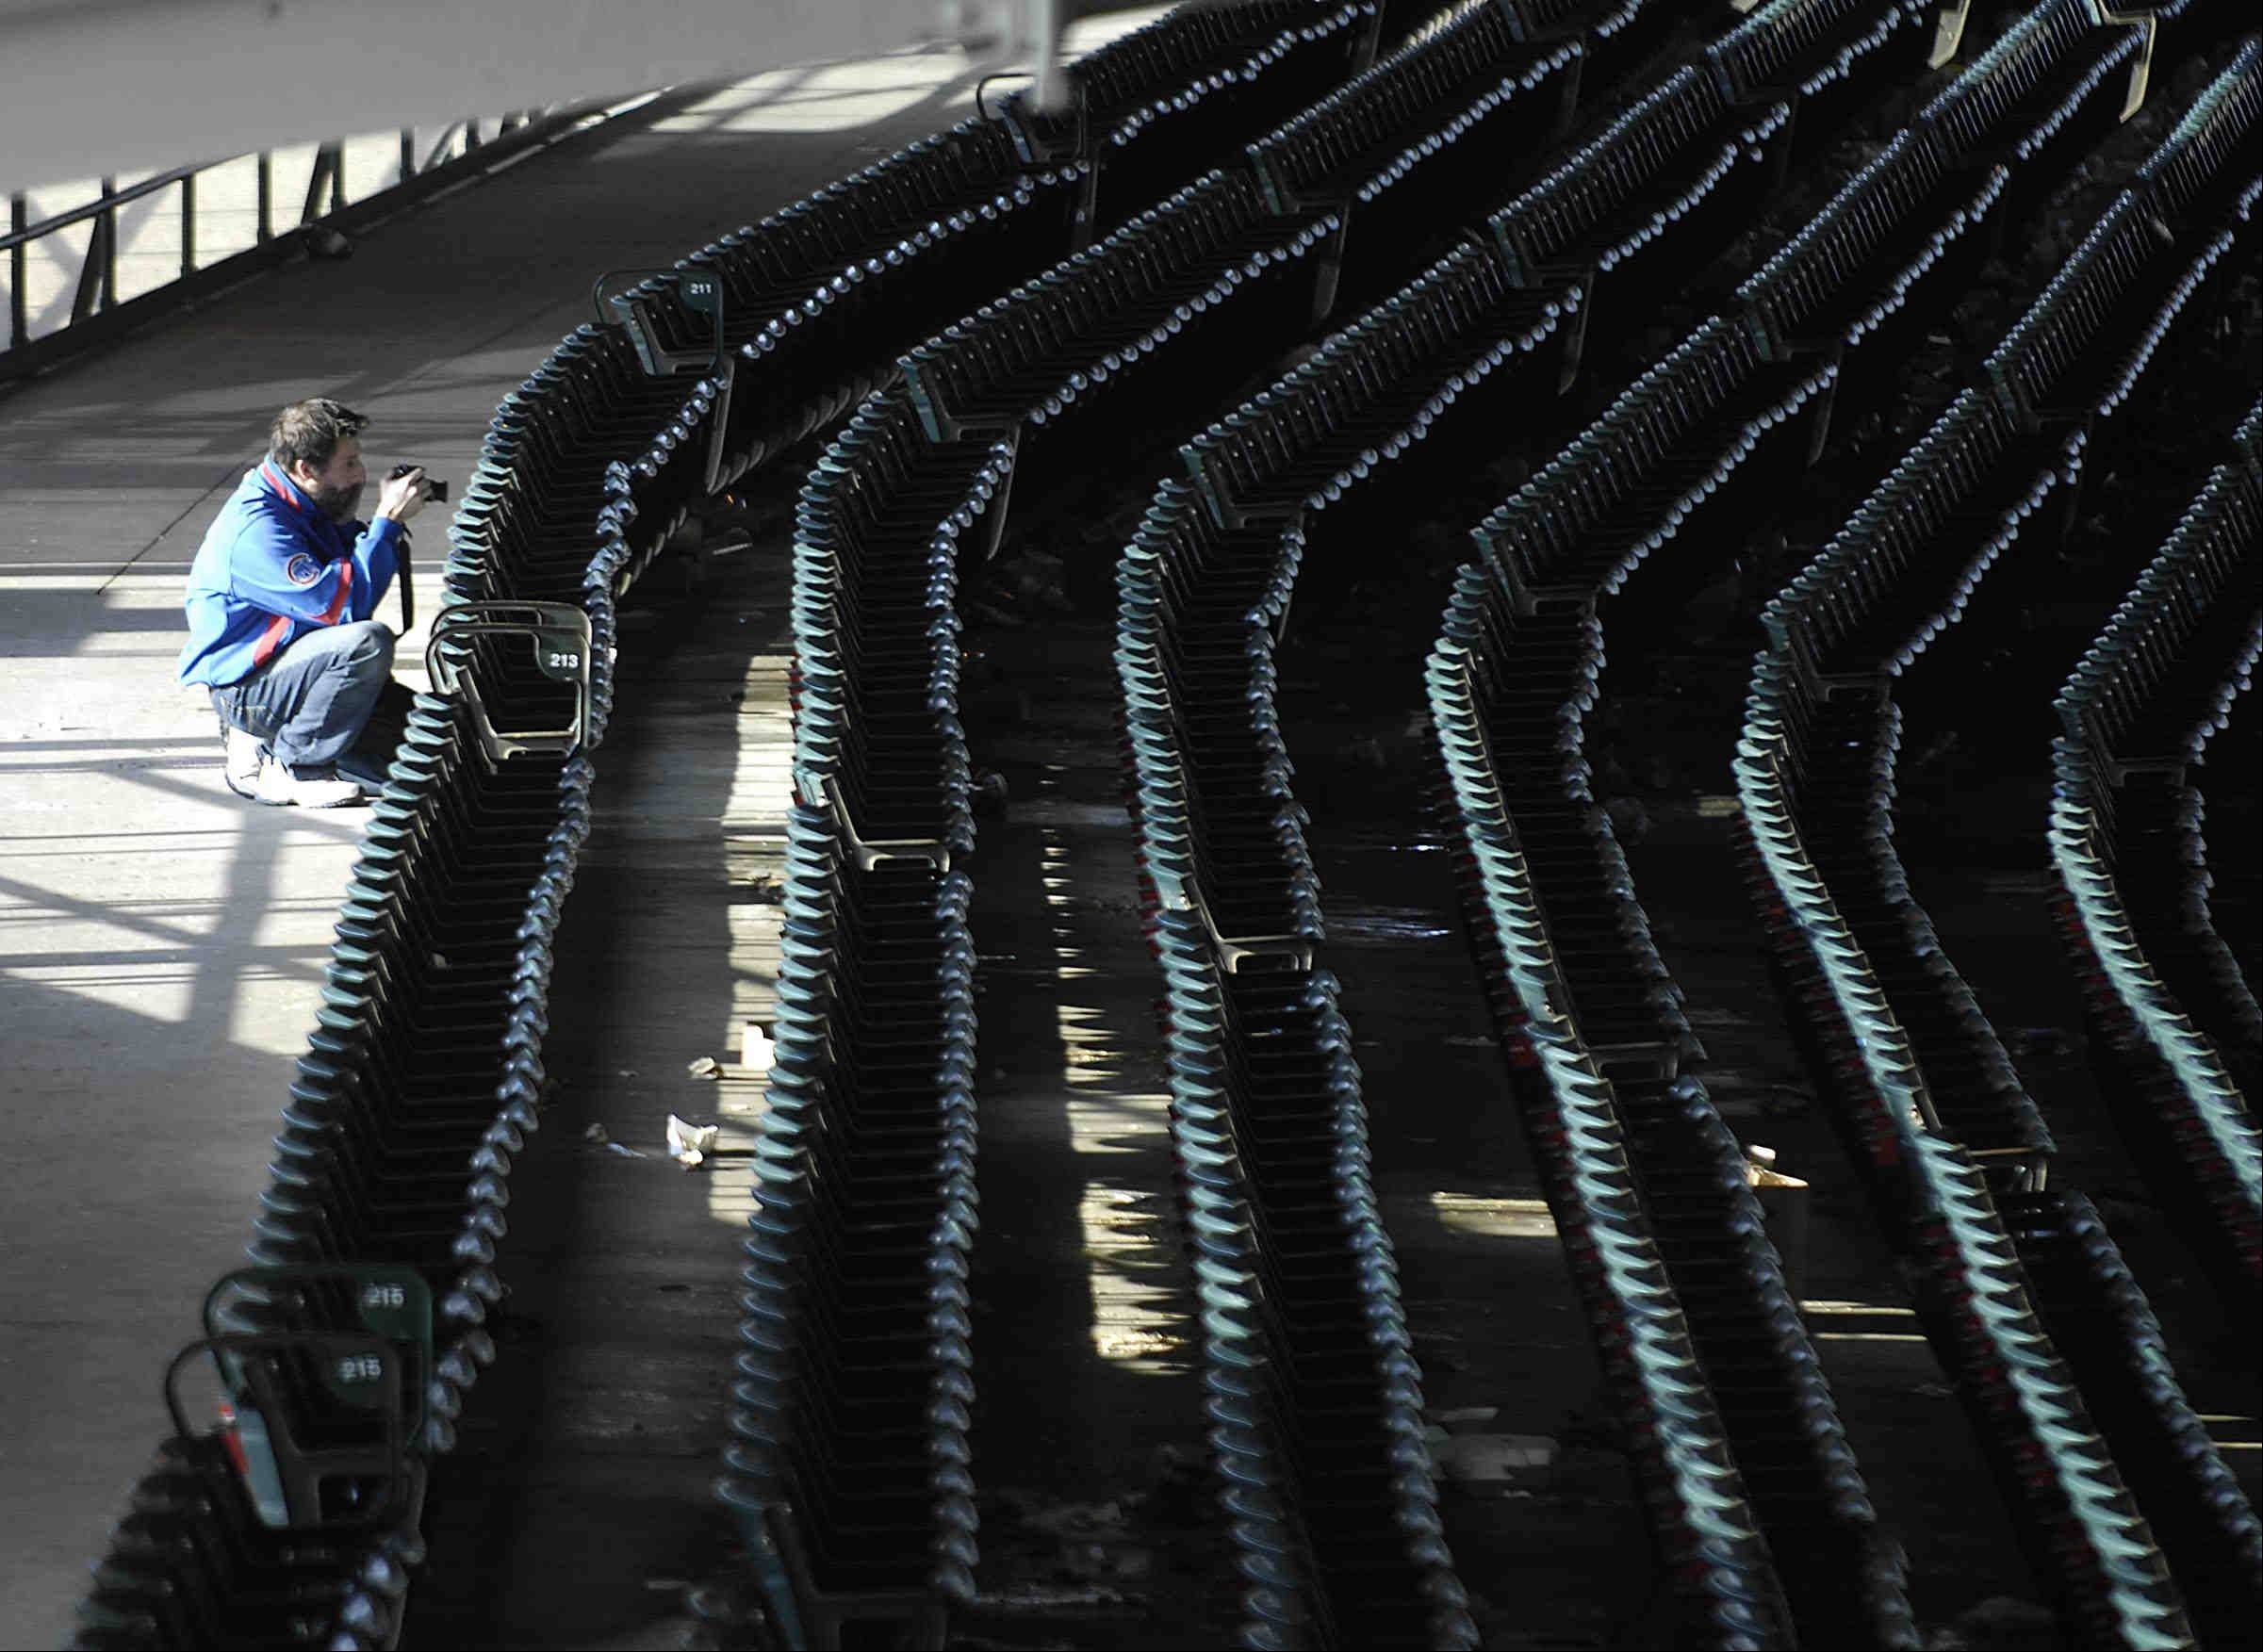 A Cubs fan takes photos of an empty Wrigley Field after Monday's loss to Milwaukee.